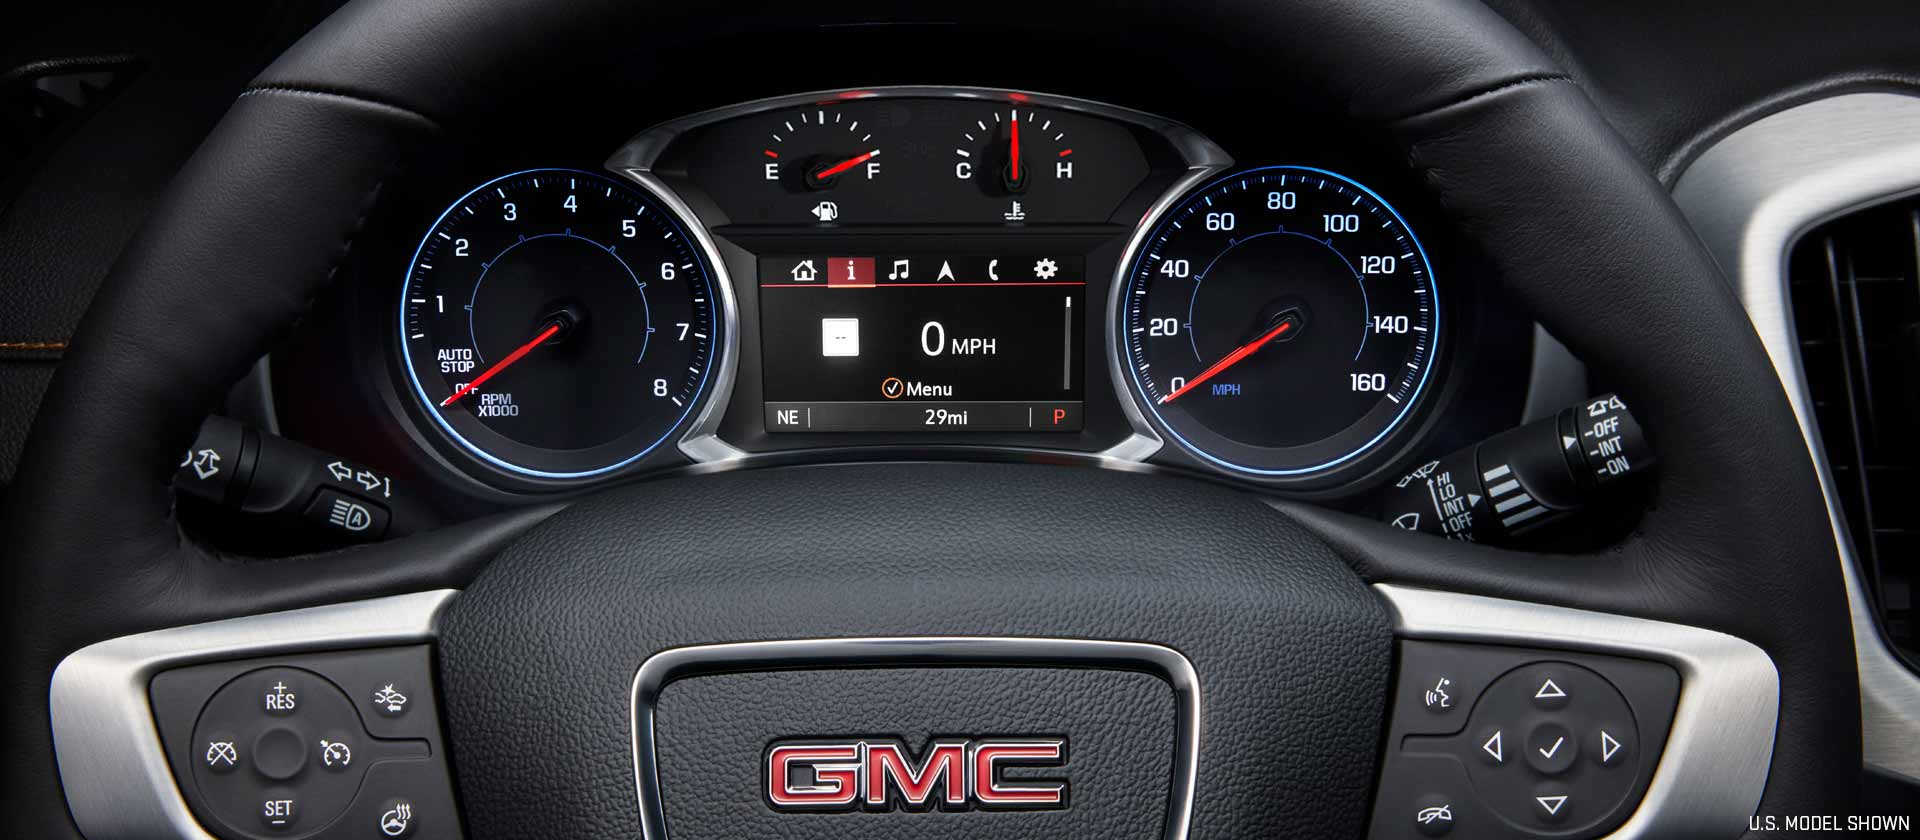 Feel the Thrill of the GMC Terrain!